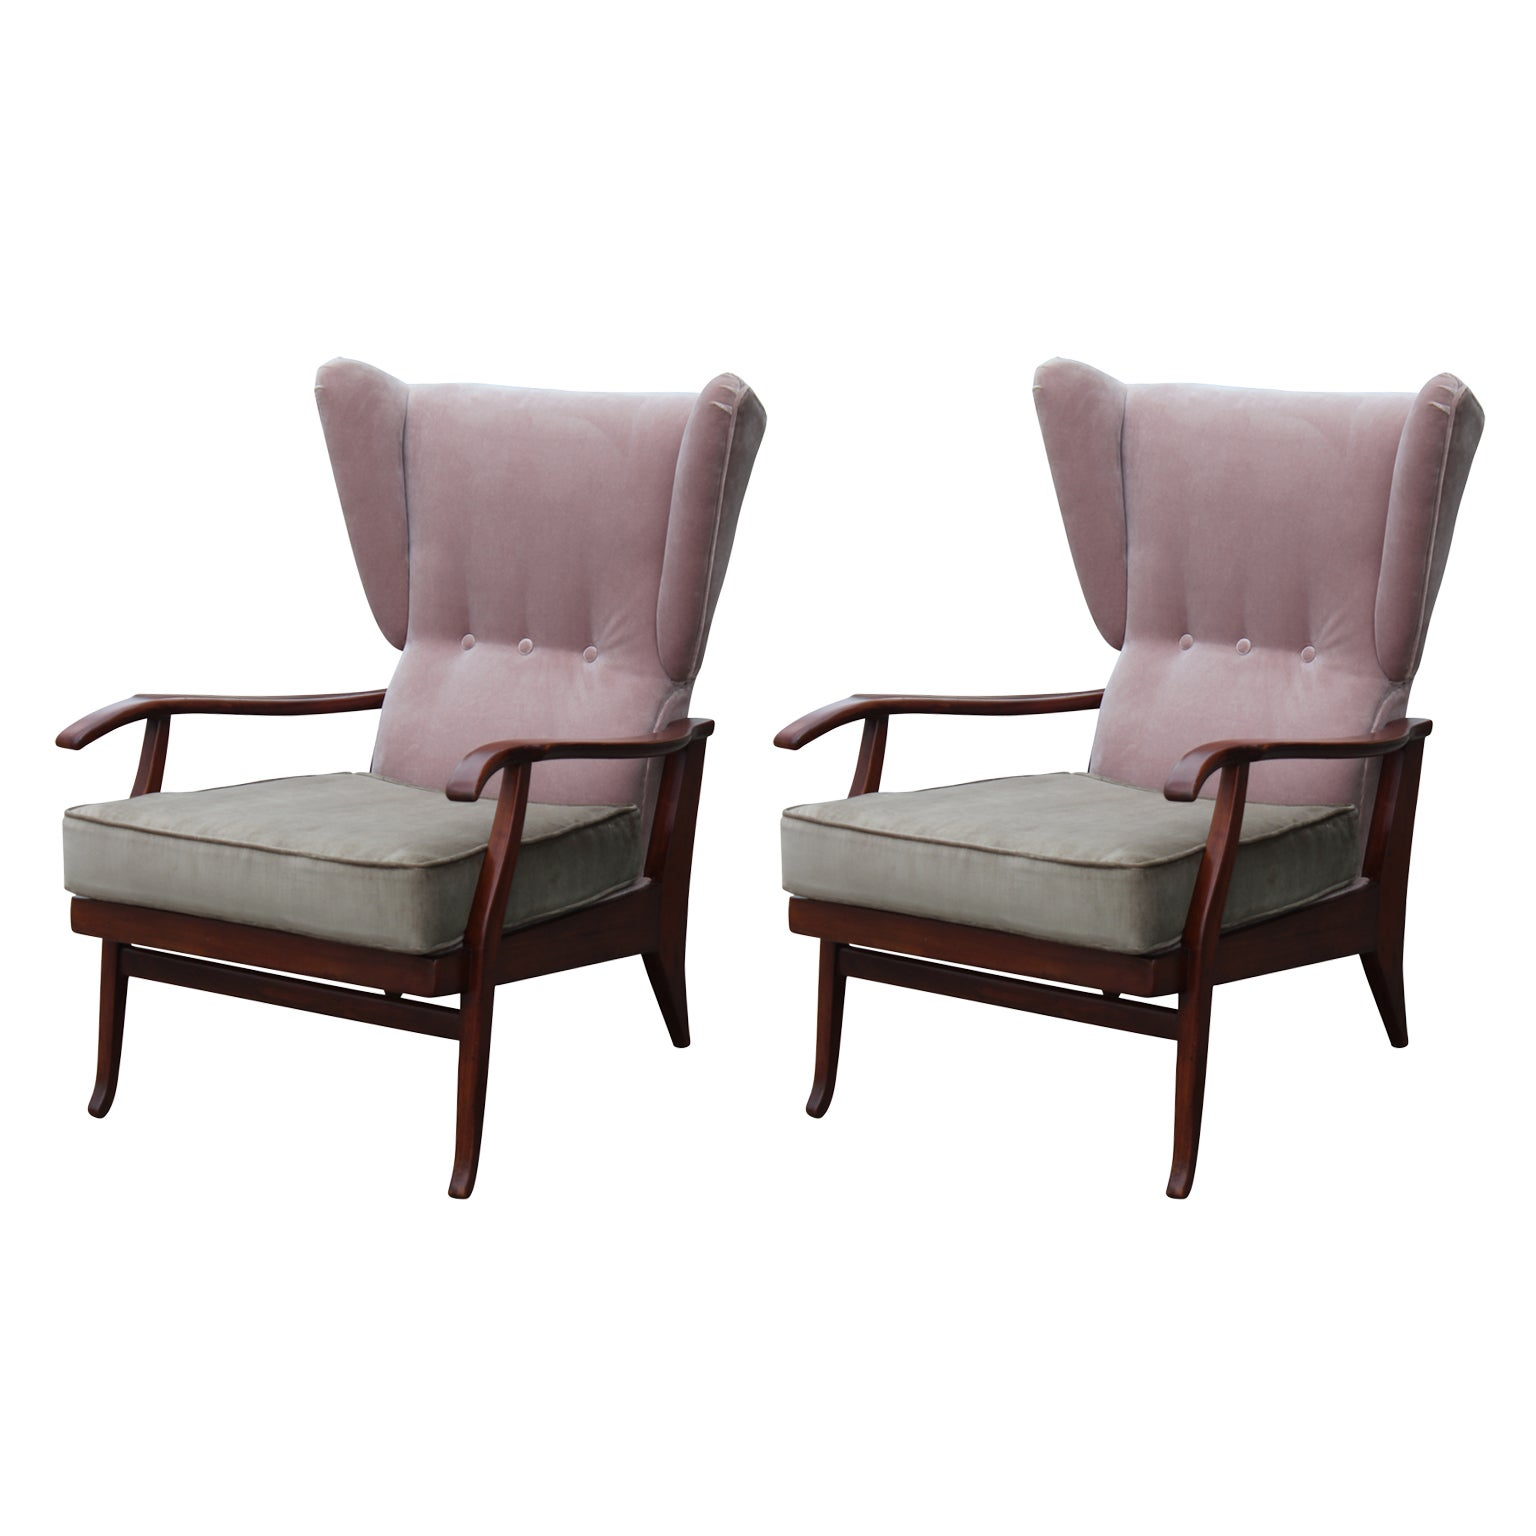 Wingback Recliner Chair Pair Of Modern Pink Taupe Italian Wingback Reclining Chairs Paolo Buffa Style